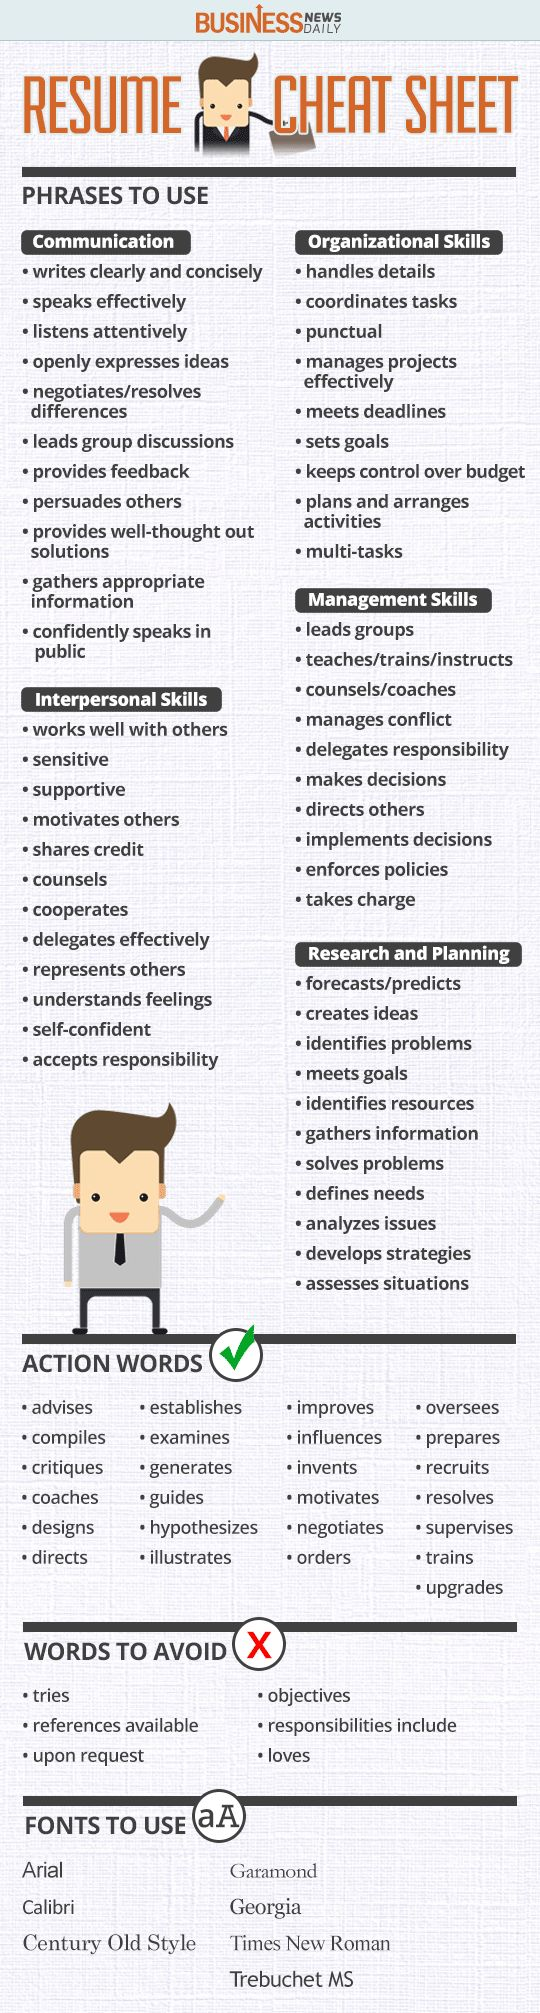 Opposenewapstandardsus  Marvelous  Ideas About Resume On Pinterest  Cv Format Resume Cv And  With Exciting Resume Cheat Sheet Infographic Andrews Almost Done With A Complete Unit On Employment Which With Beauteous Professional Nanny Resume Also What Is A Good Resume Title In Addition My New Resume And Grant Writing Resume As Well As Independent Consultant Resume Additionally Free Online Resume Builder And Download From Pinterestcom With Opposenewapstandardsus  Exciting  Ideas About Resume On Pinterest  Cv Format Resume Cv And  With Beauteous Resume Cheat Sheet Infographic Andrews Almost Done With A Complete Unit On Employment Which And Marvelous Professional Nanny Resume Also What Is A Good Resume Title In Addition My New Resume From Pinterestcom